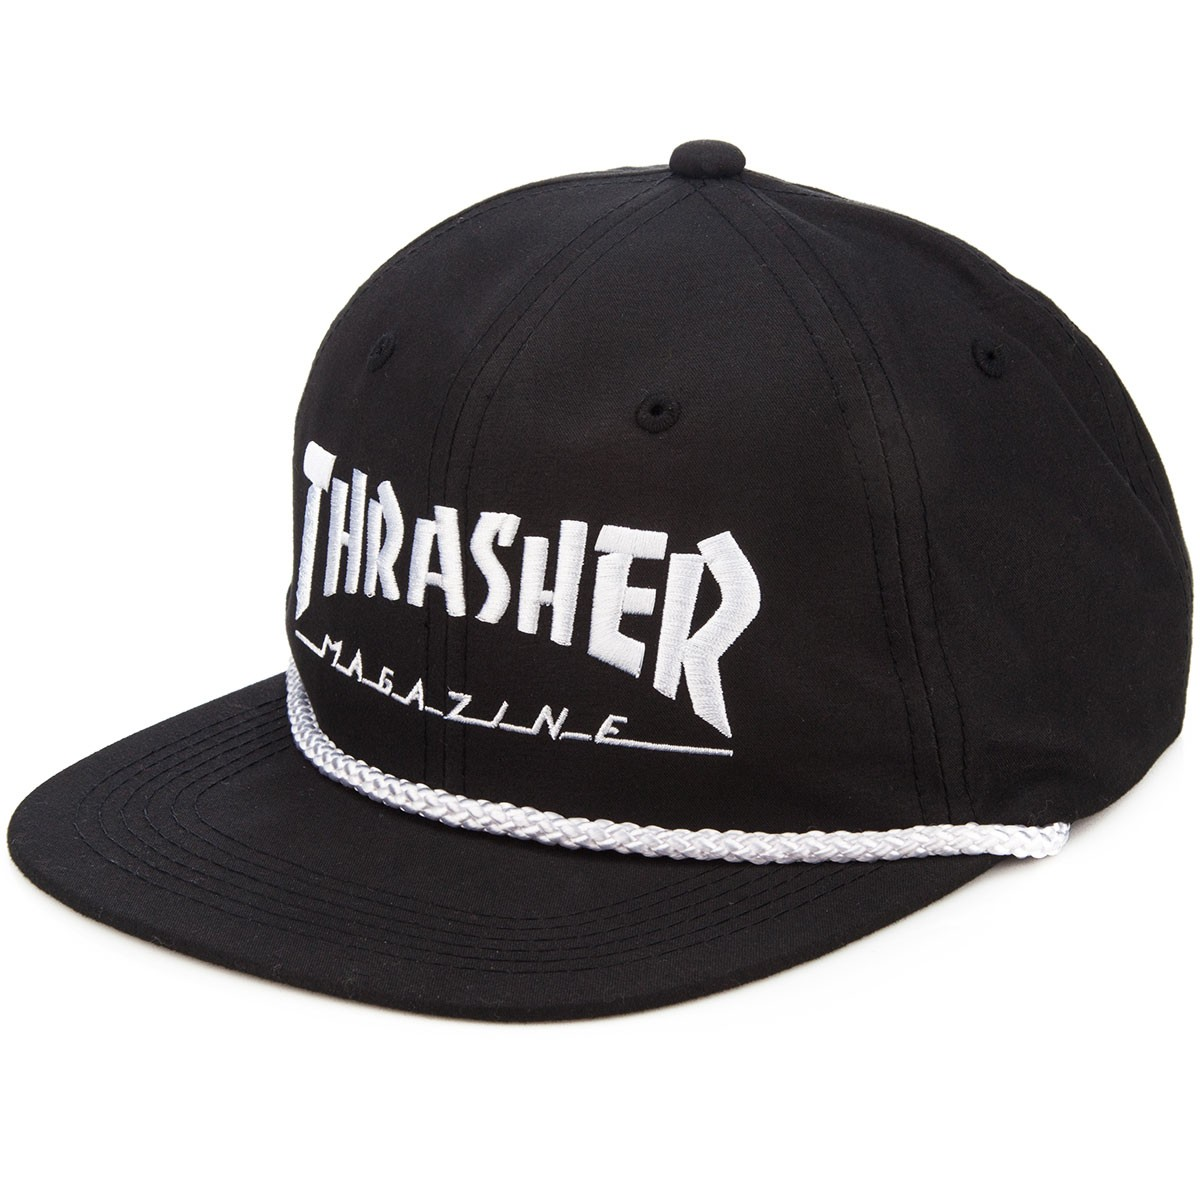 Thrasher Rope Snapback Hat - Black/White